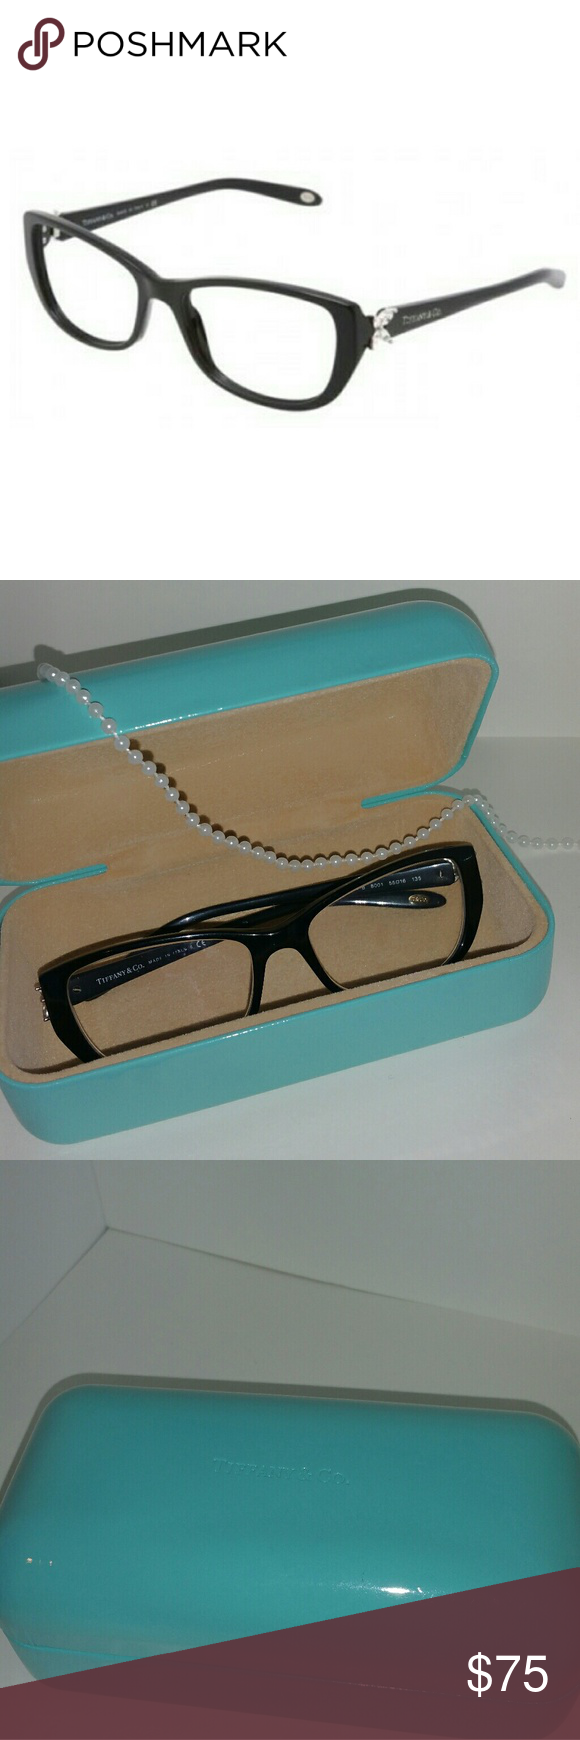 6578ded22853 Tiffany   Co. Eyewear TF 2044B BLACK FRAME   CASE These PRE L😍VED